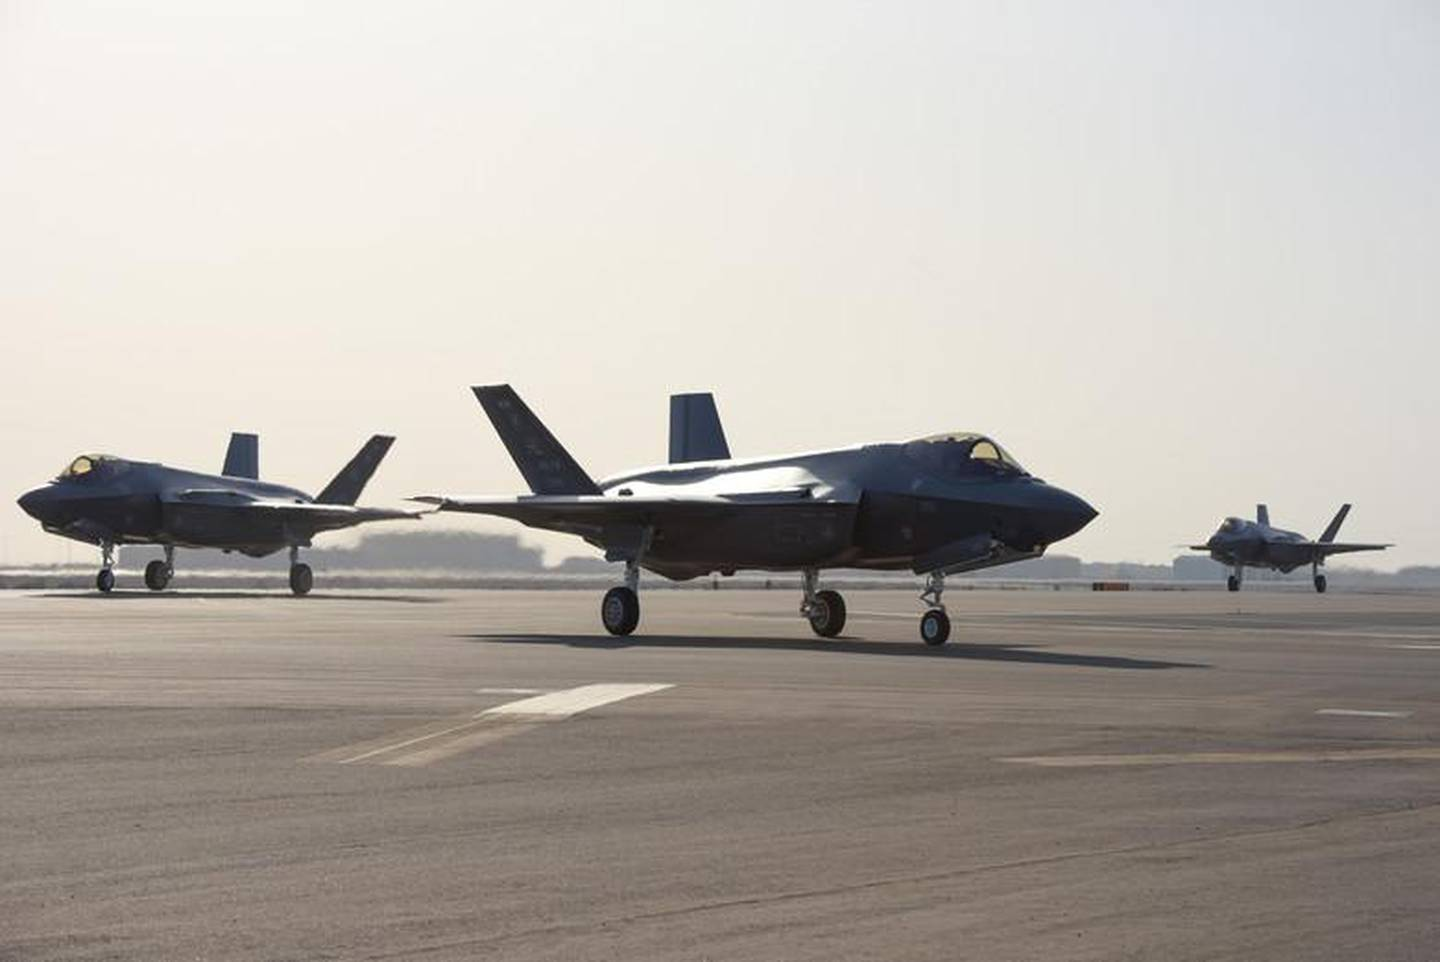 Three F-35A Lightning IIs assigned to the 4th Expeditionary Fighter Squadron taxi after landing at Al Dhafra Air Base, United Arab Emirates, April 15, 2019. The F-35A Lightning II is deployed to the Air Forces Central Command Area of Responsibility for the first time in U.S. Air Force history. (U.S. Air Force photo by Staff Sgt. Chris Thornbury)